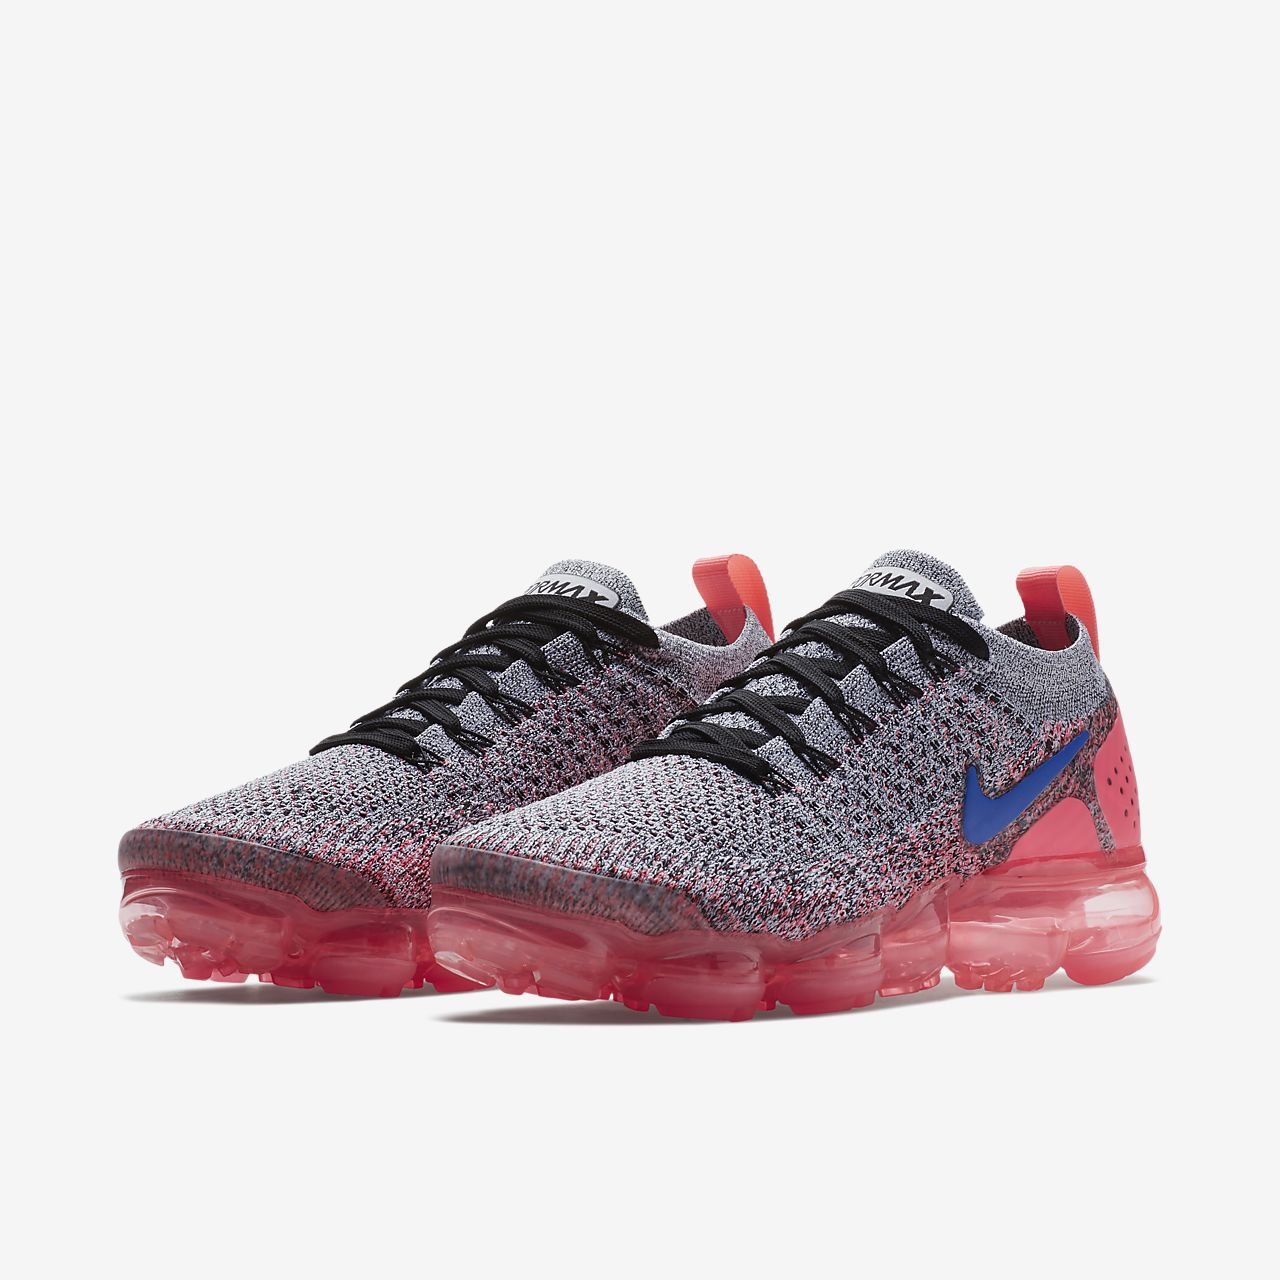 nike air vapormax flyknit 2 women 39 s running shoe. Black Bedroom Furniture Sets. Home Design Ideas